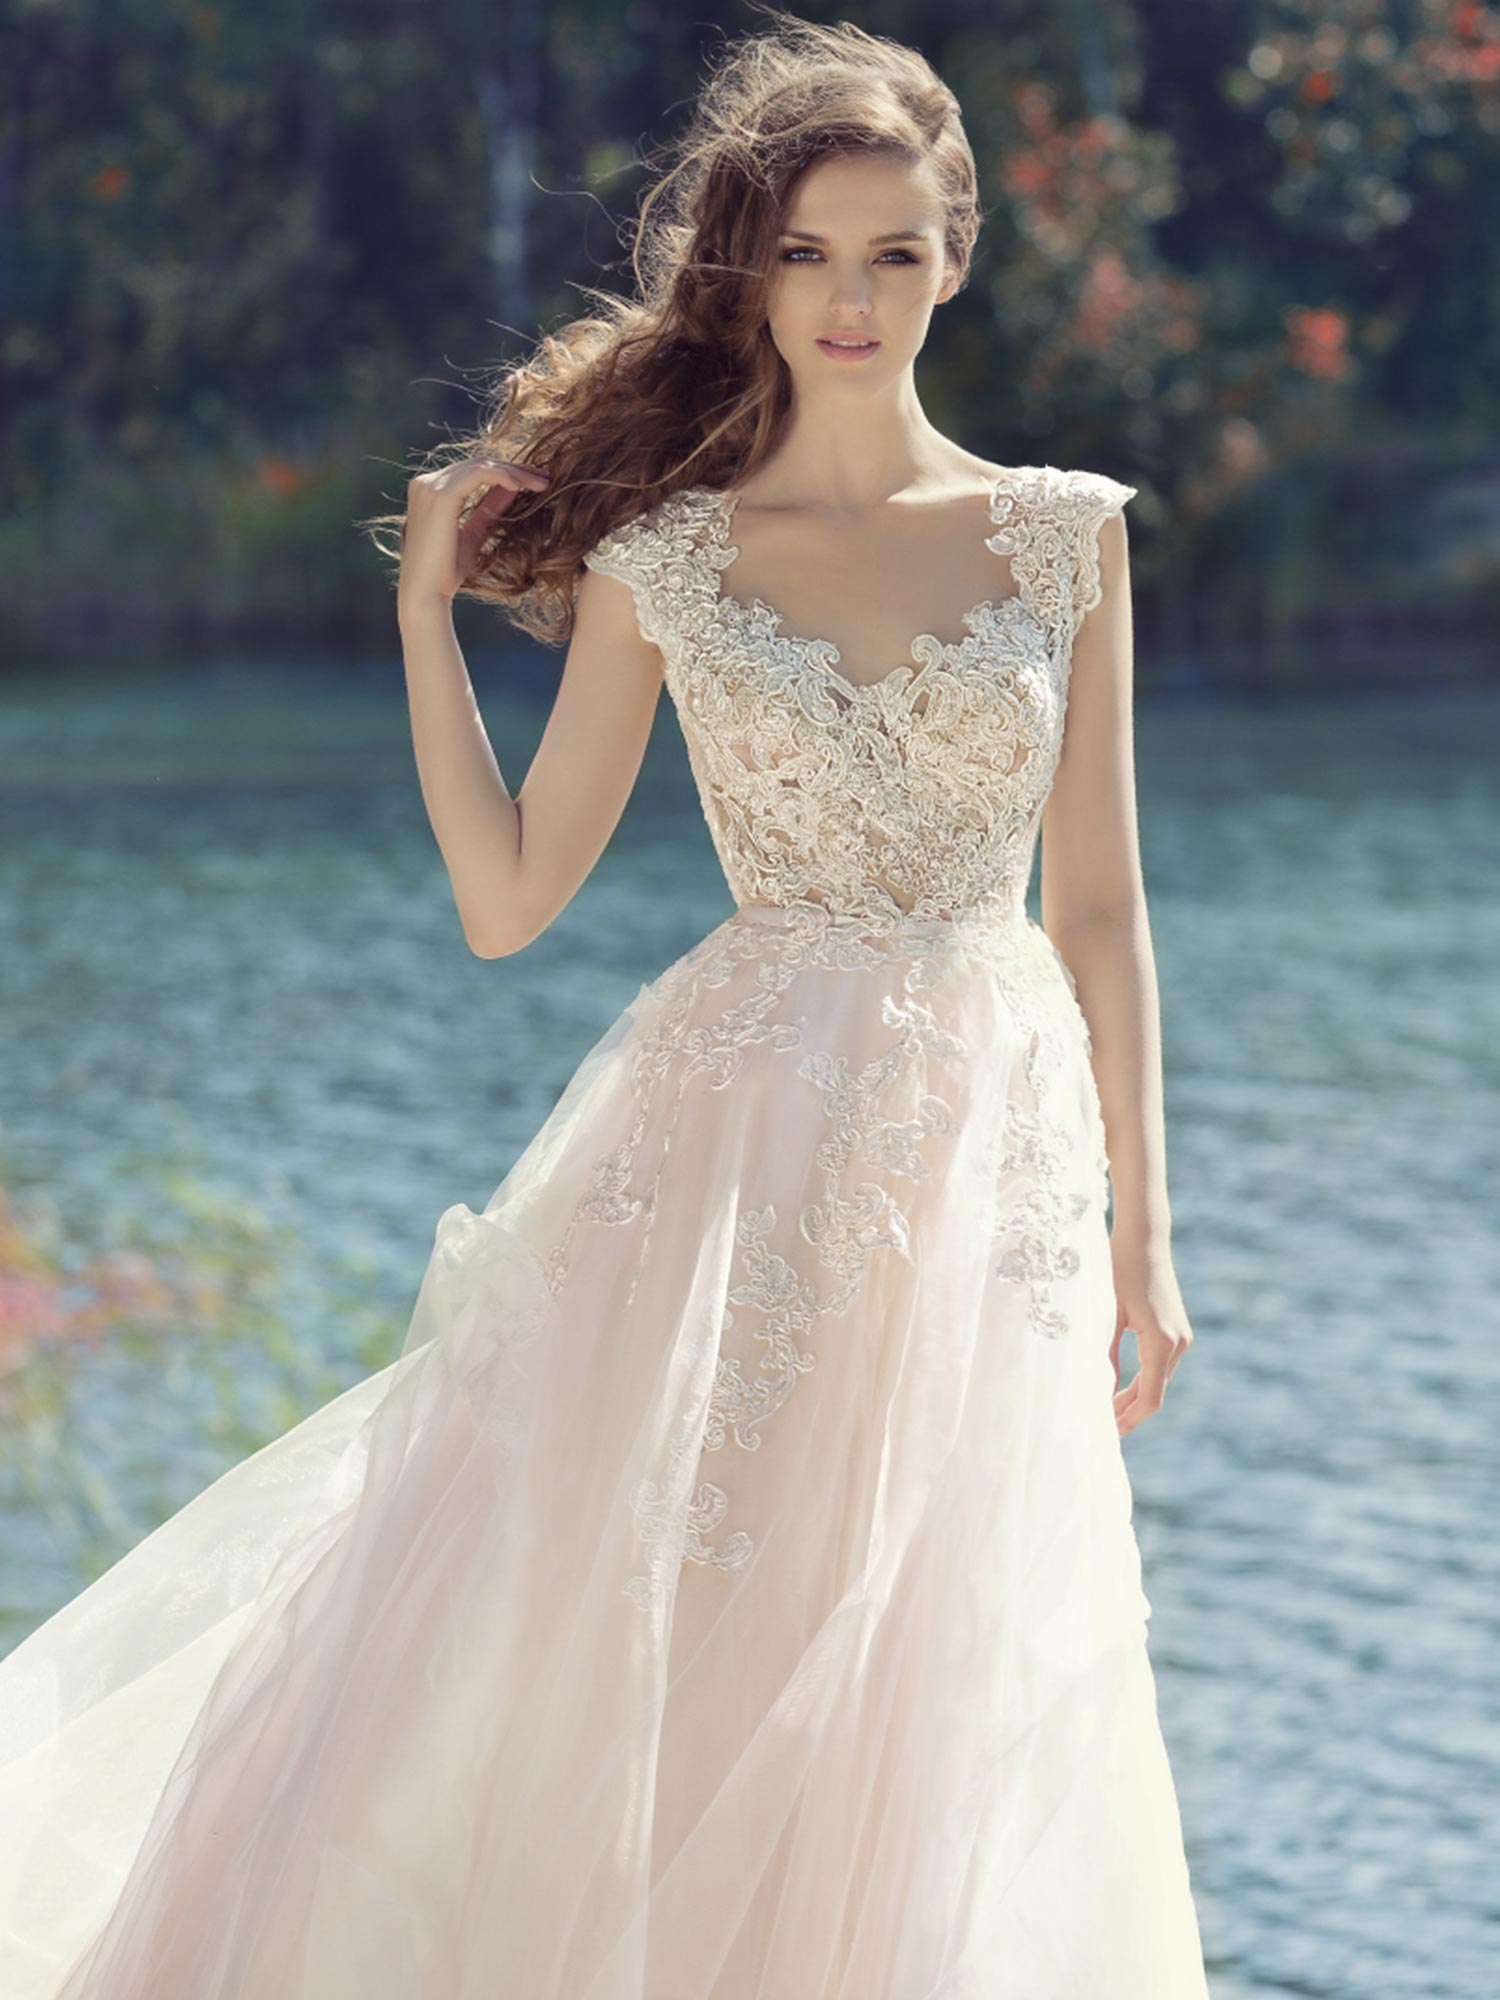 Lace Bodice Ball Gown Wedding Dress With Tulle Skirt